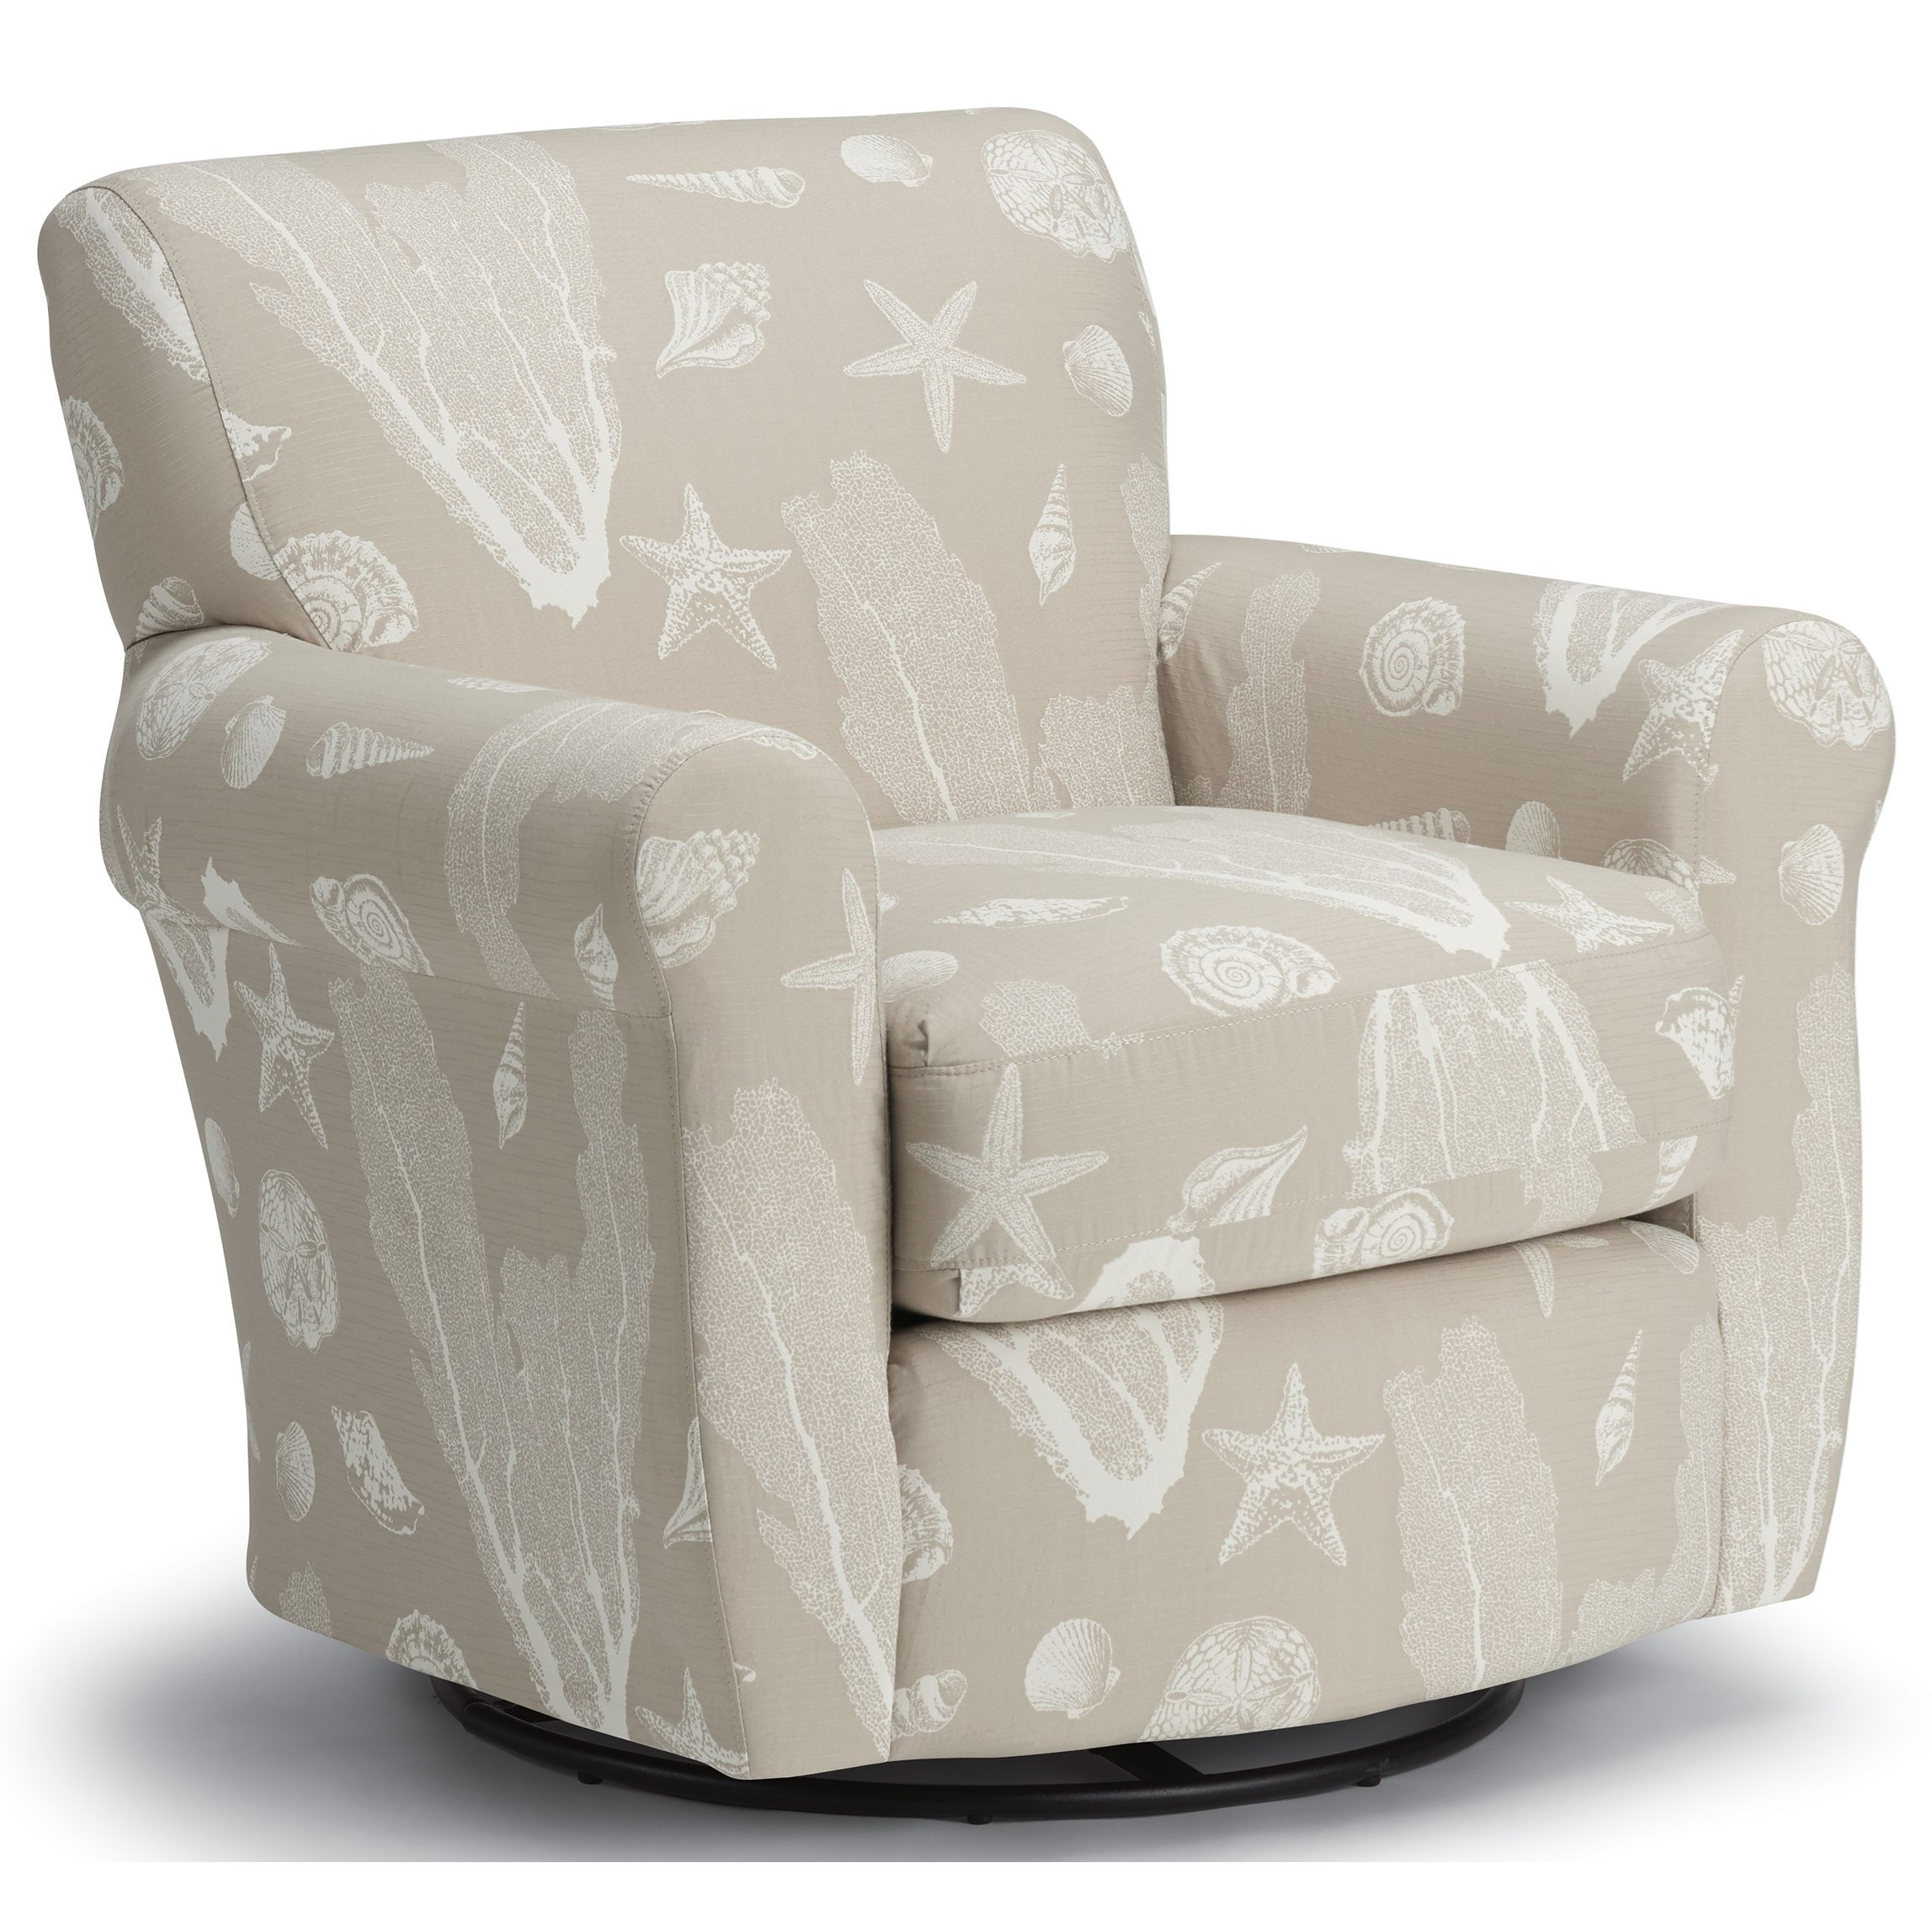 Gemily Swivel Glider Chair by Best Home Furnishings at Pedigo Furniture